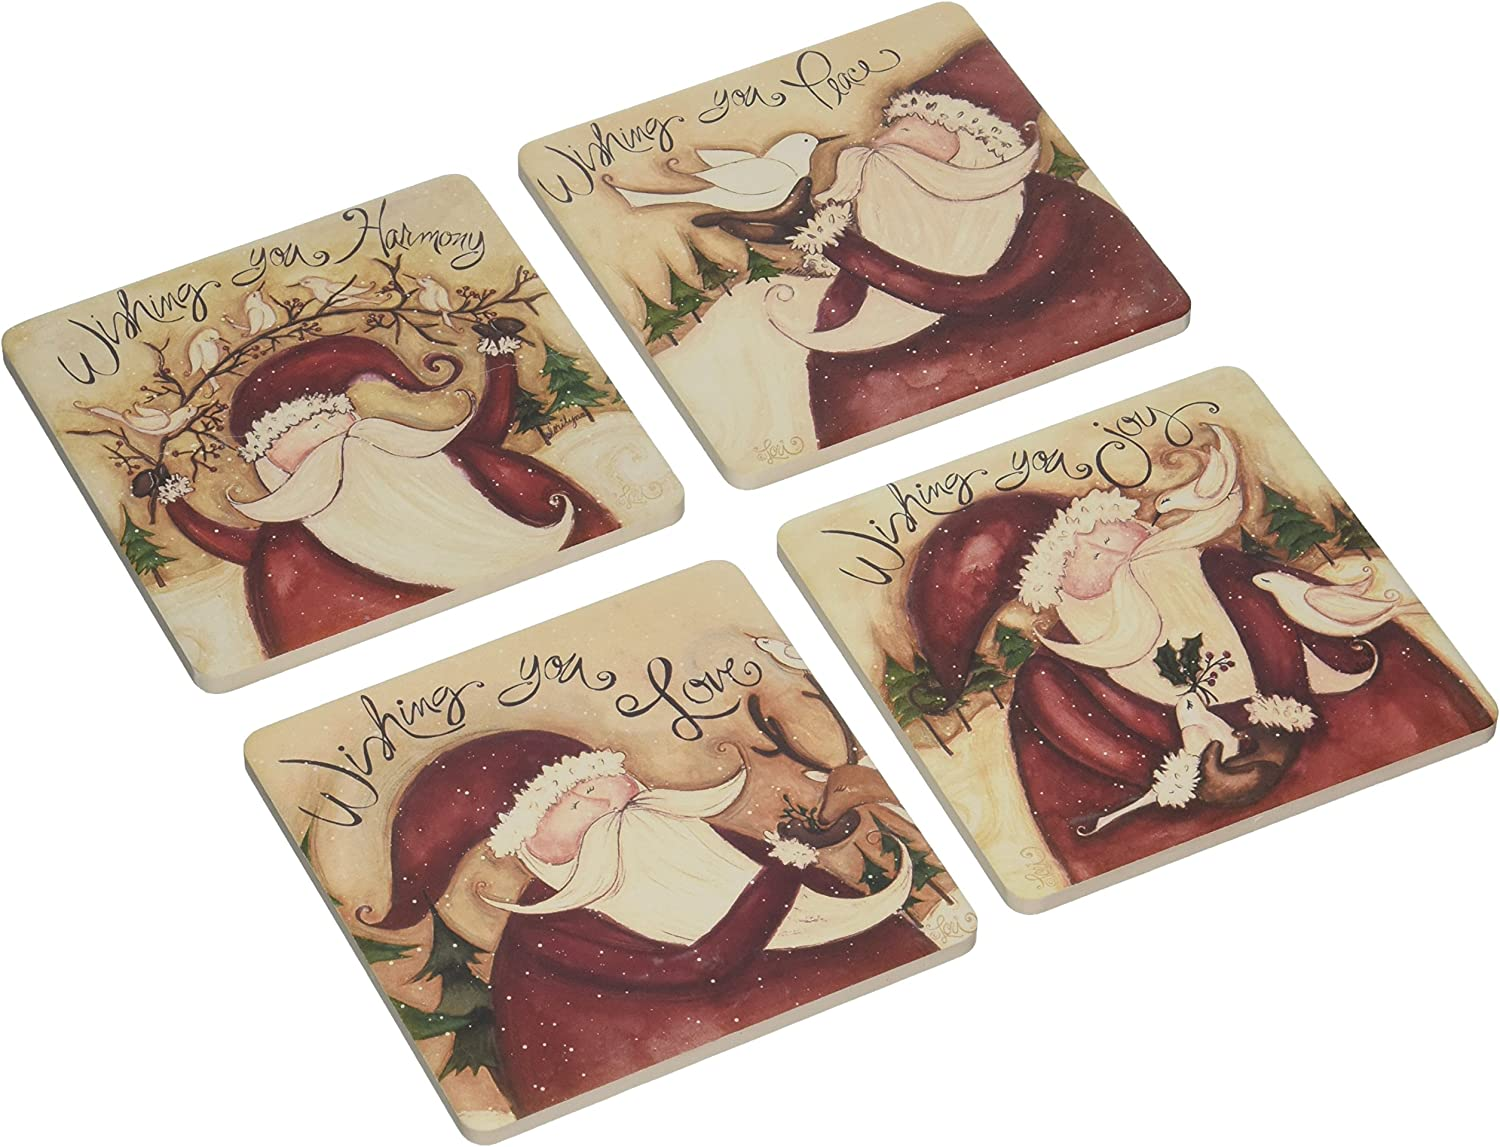 4-1//4-Inch,Holiday Wishes CoasterStone AS8765 Absorbent Coasters Set of 4 Holiday Wishes